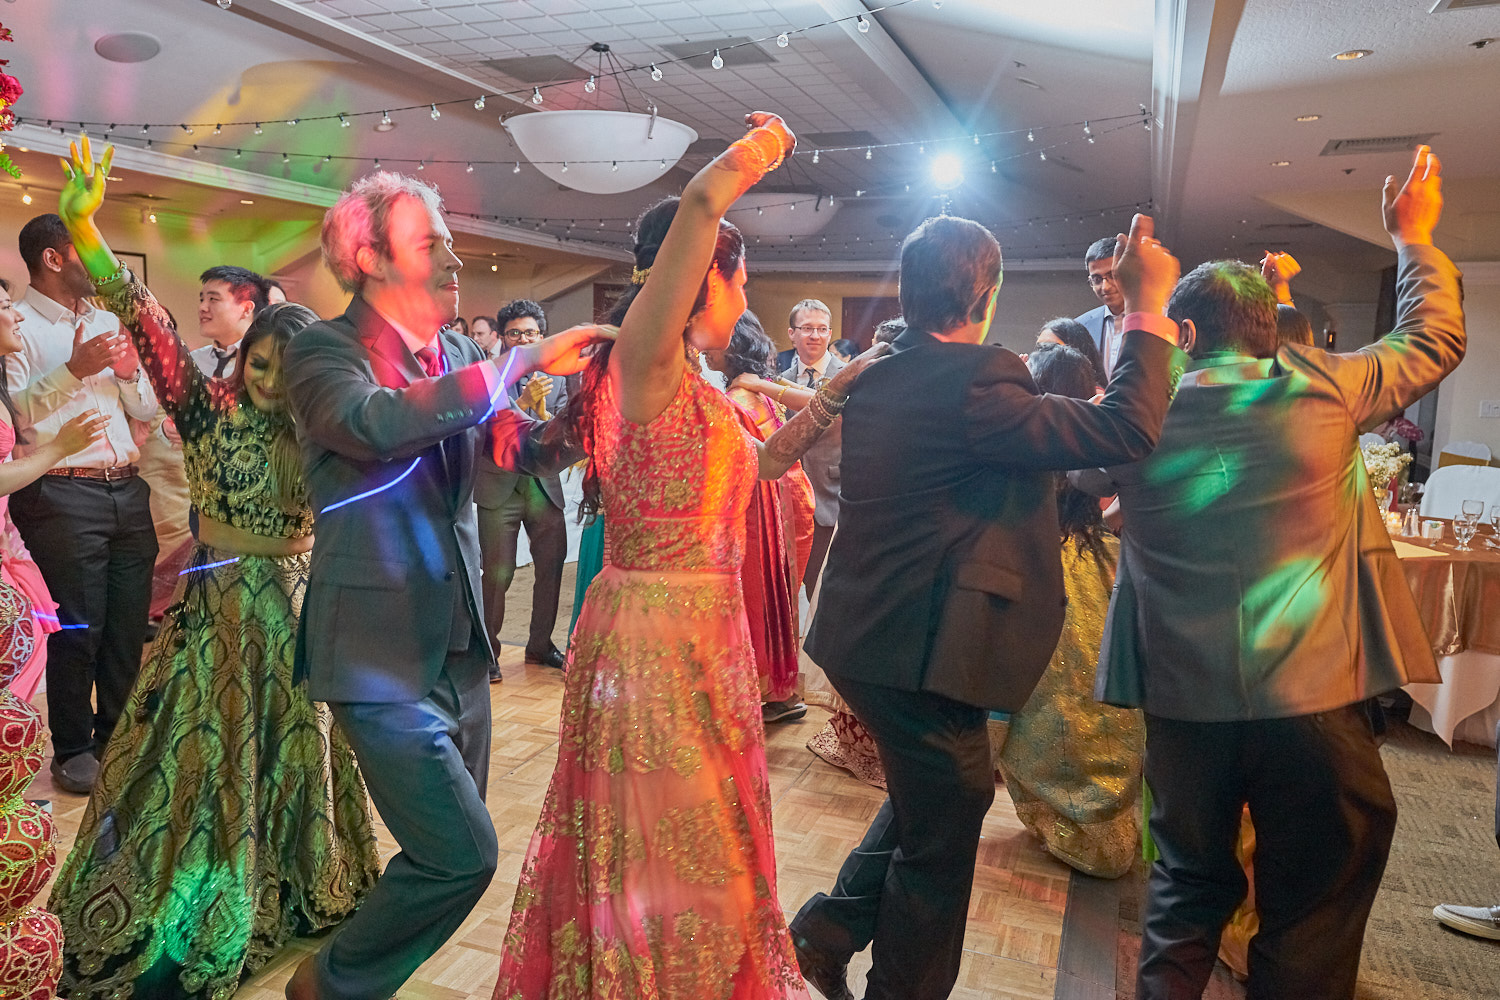 saratoga-country-club-wedding-reception-photography-by-afewgoodclicks-at 167.jpg